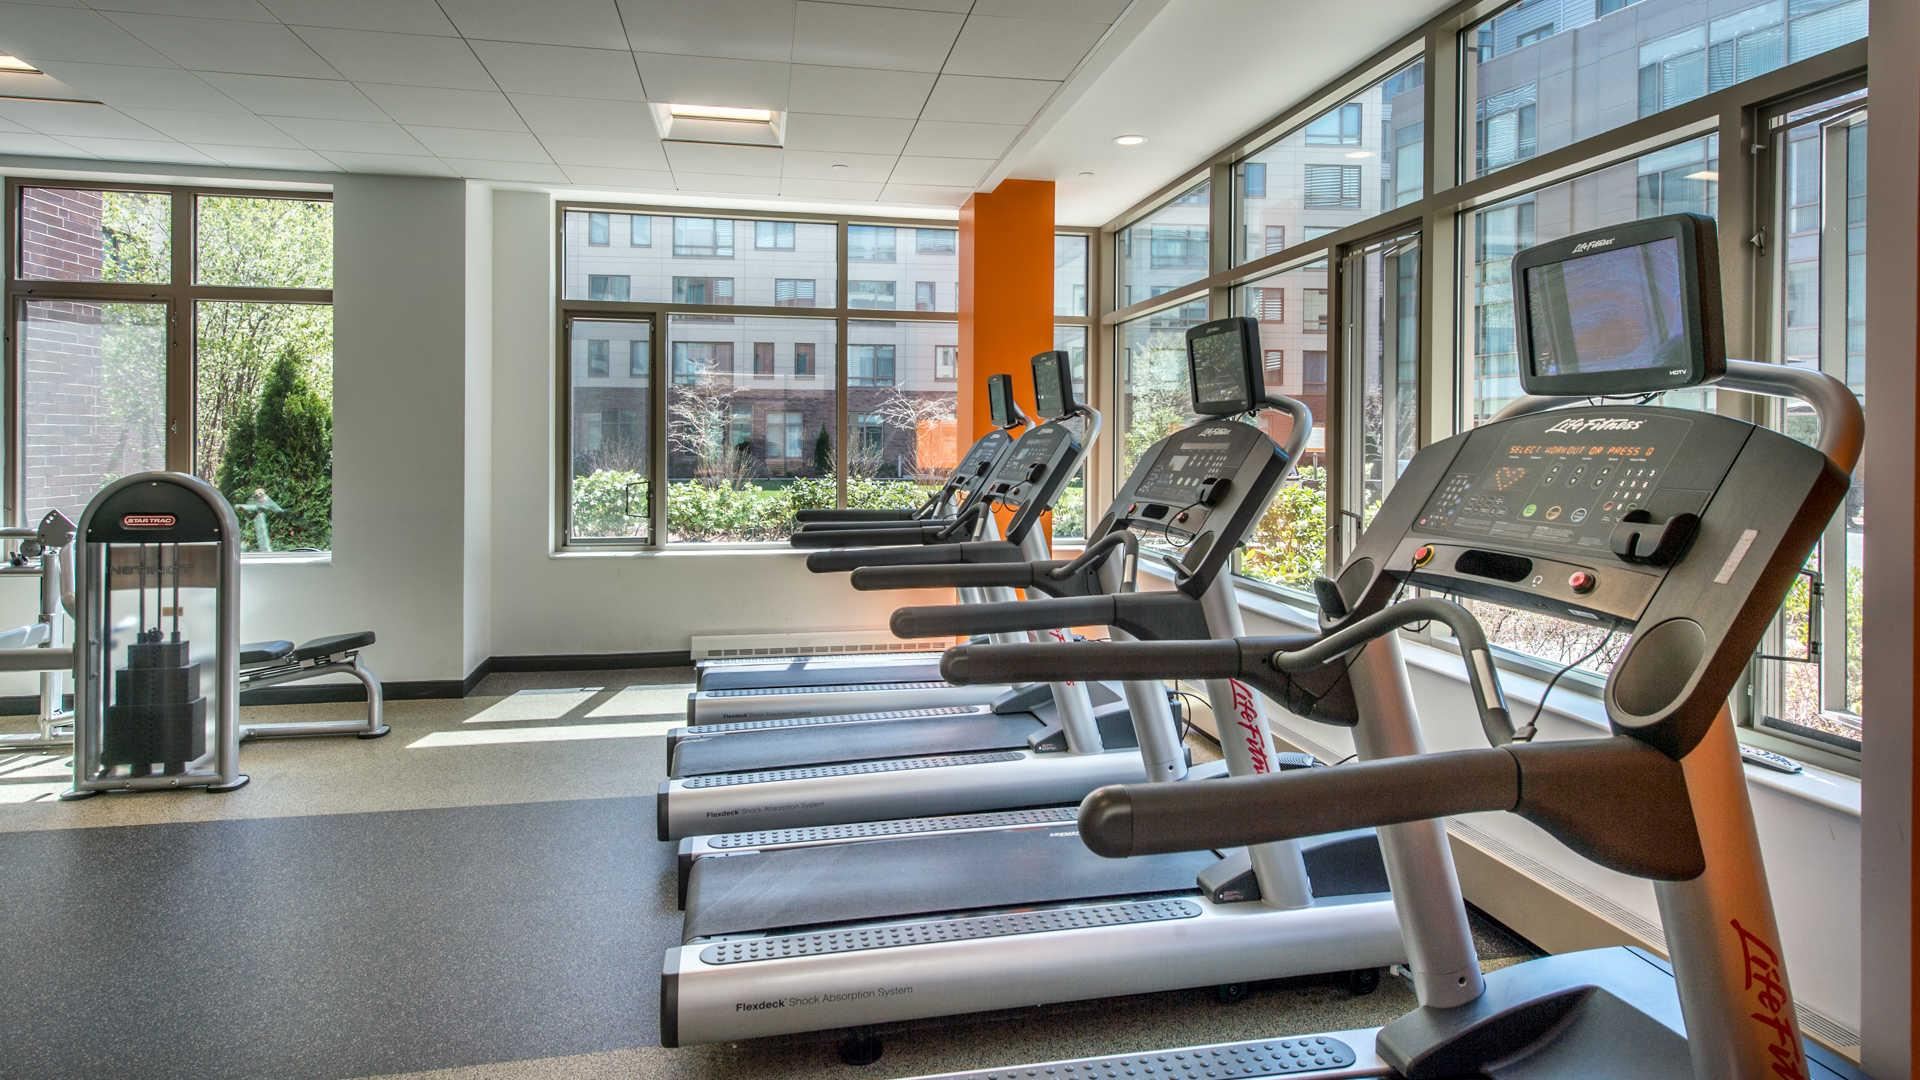 Third square apartments cambridge ma walk score - 3 bedroom apartments in cambridge ma ...